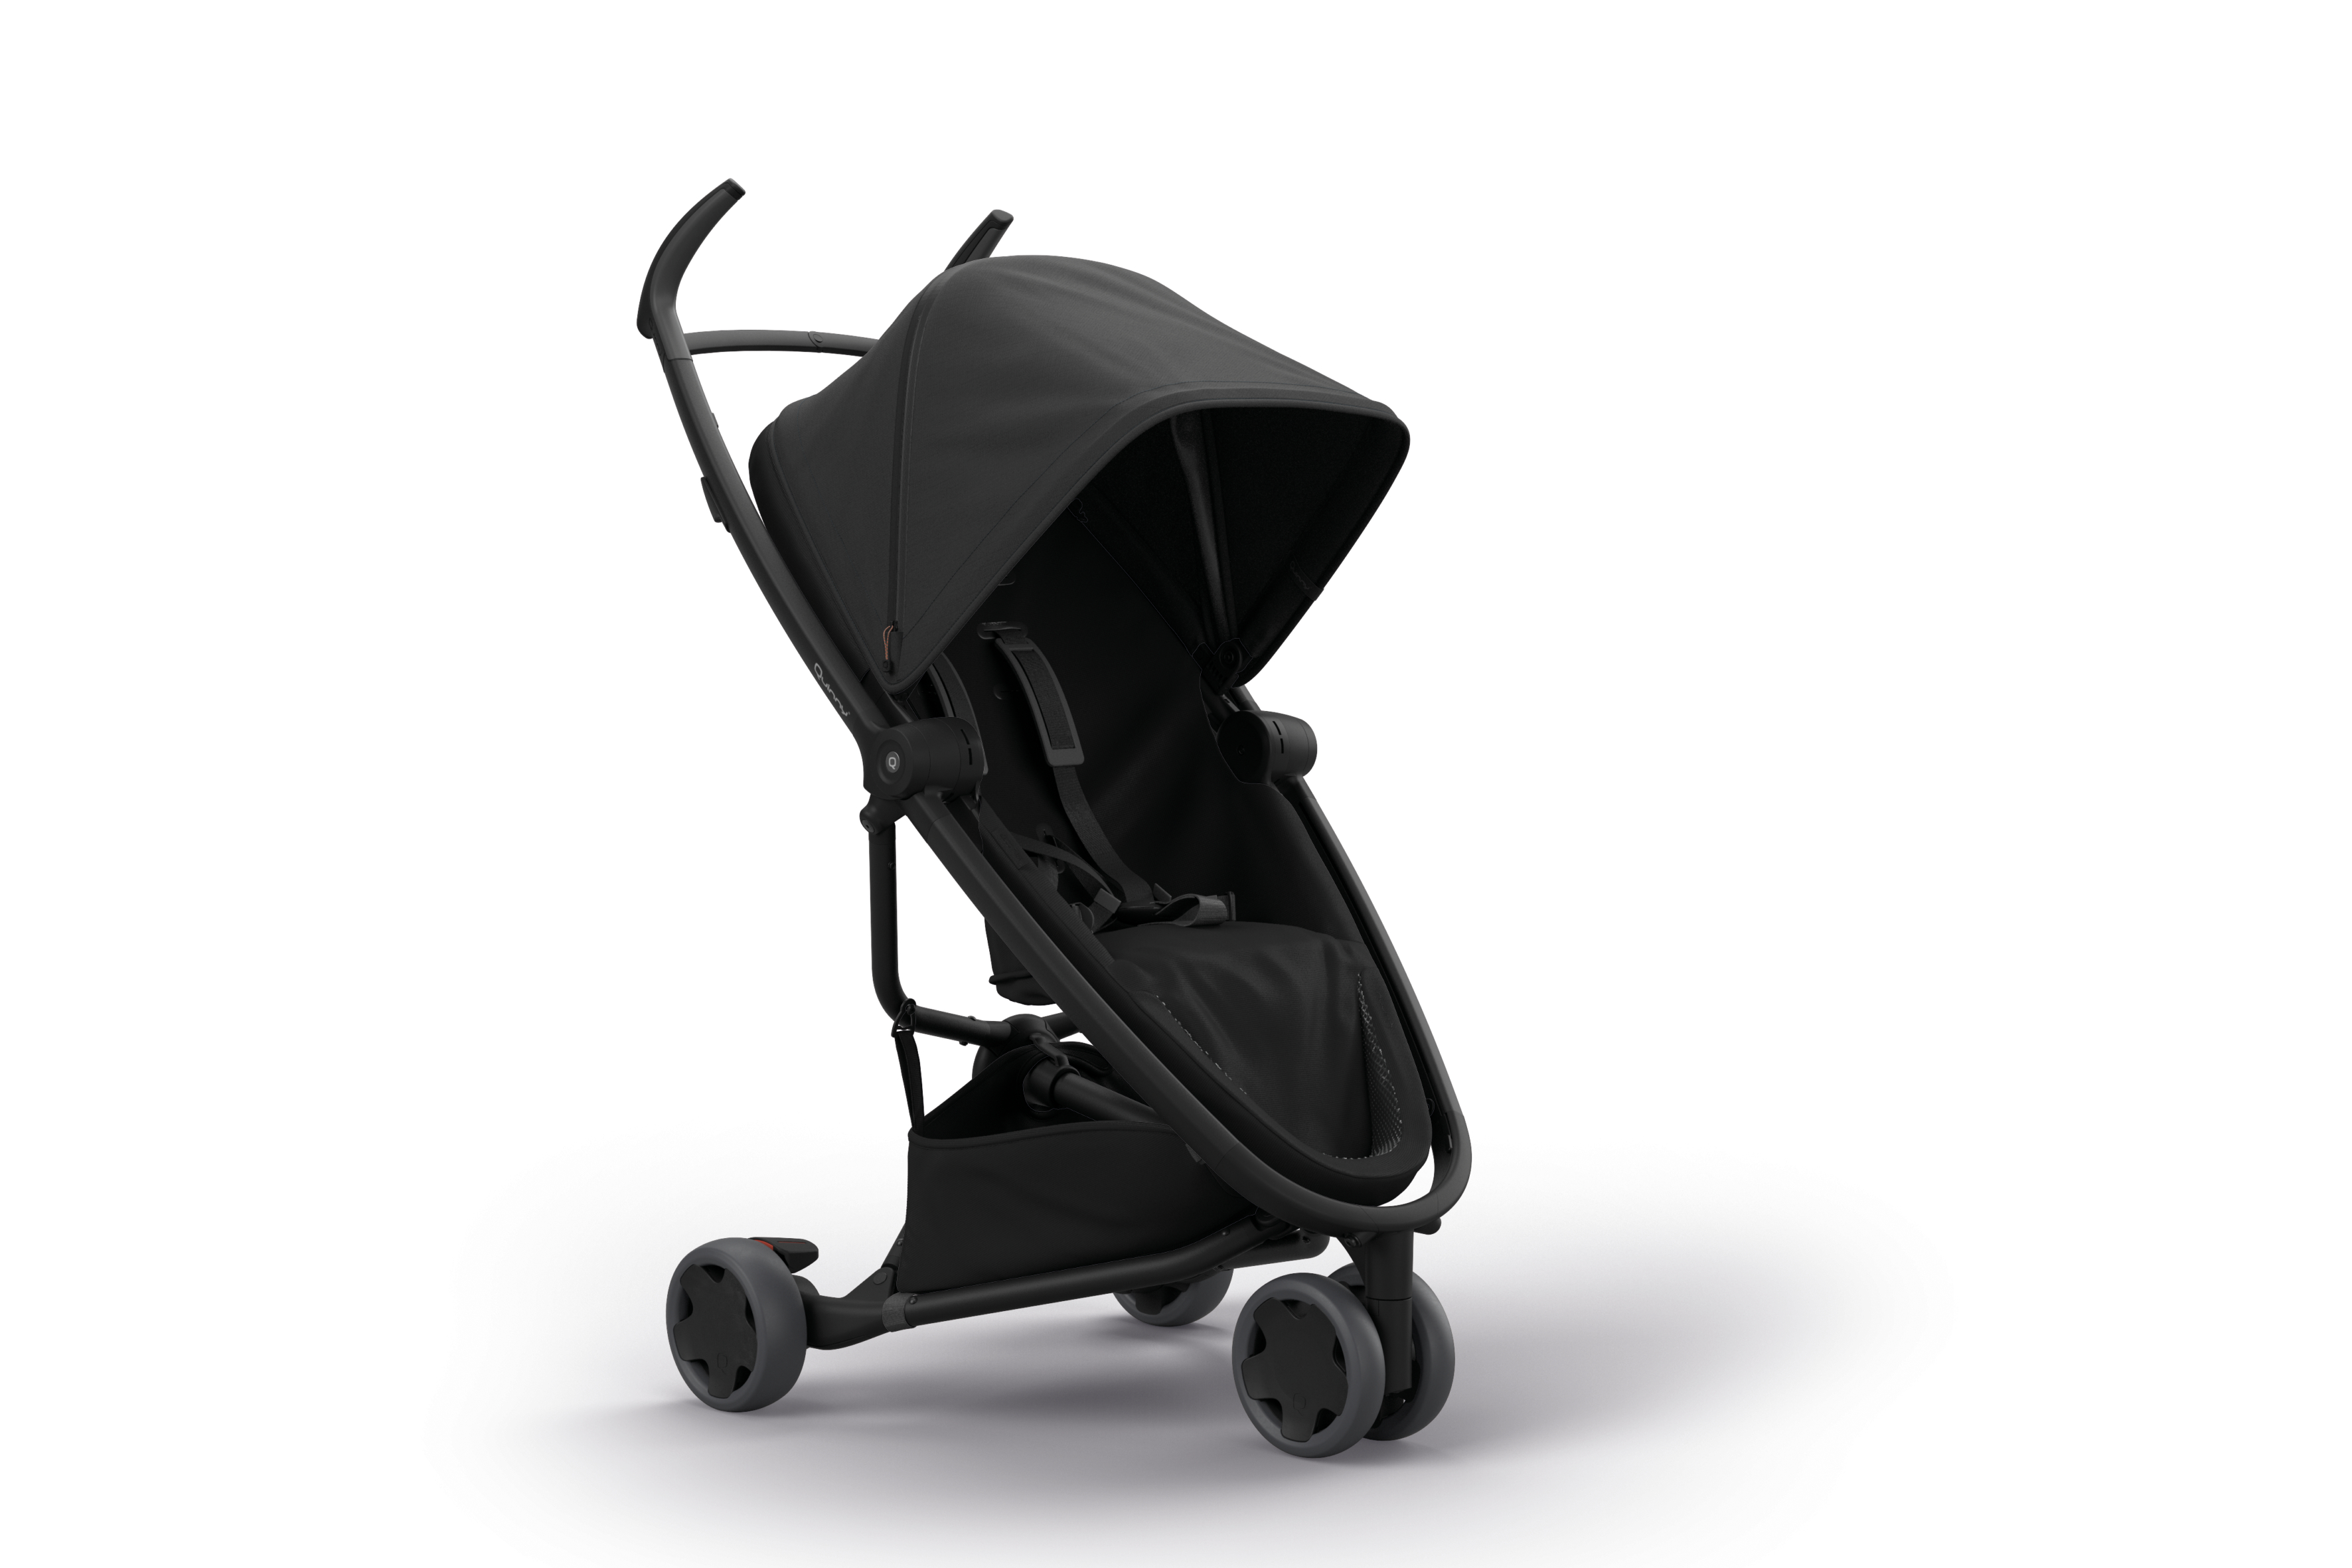 1399991000_quinny_stroller_1stagestroller_ZF_2017_black_blackonblack_1_sf_3qrtright_recline3